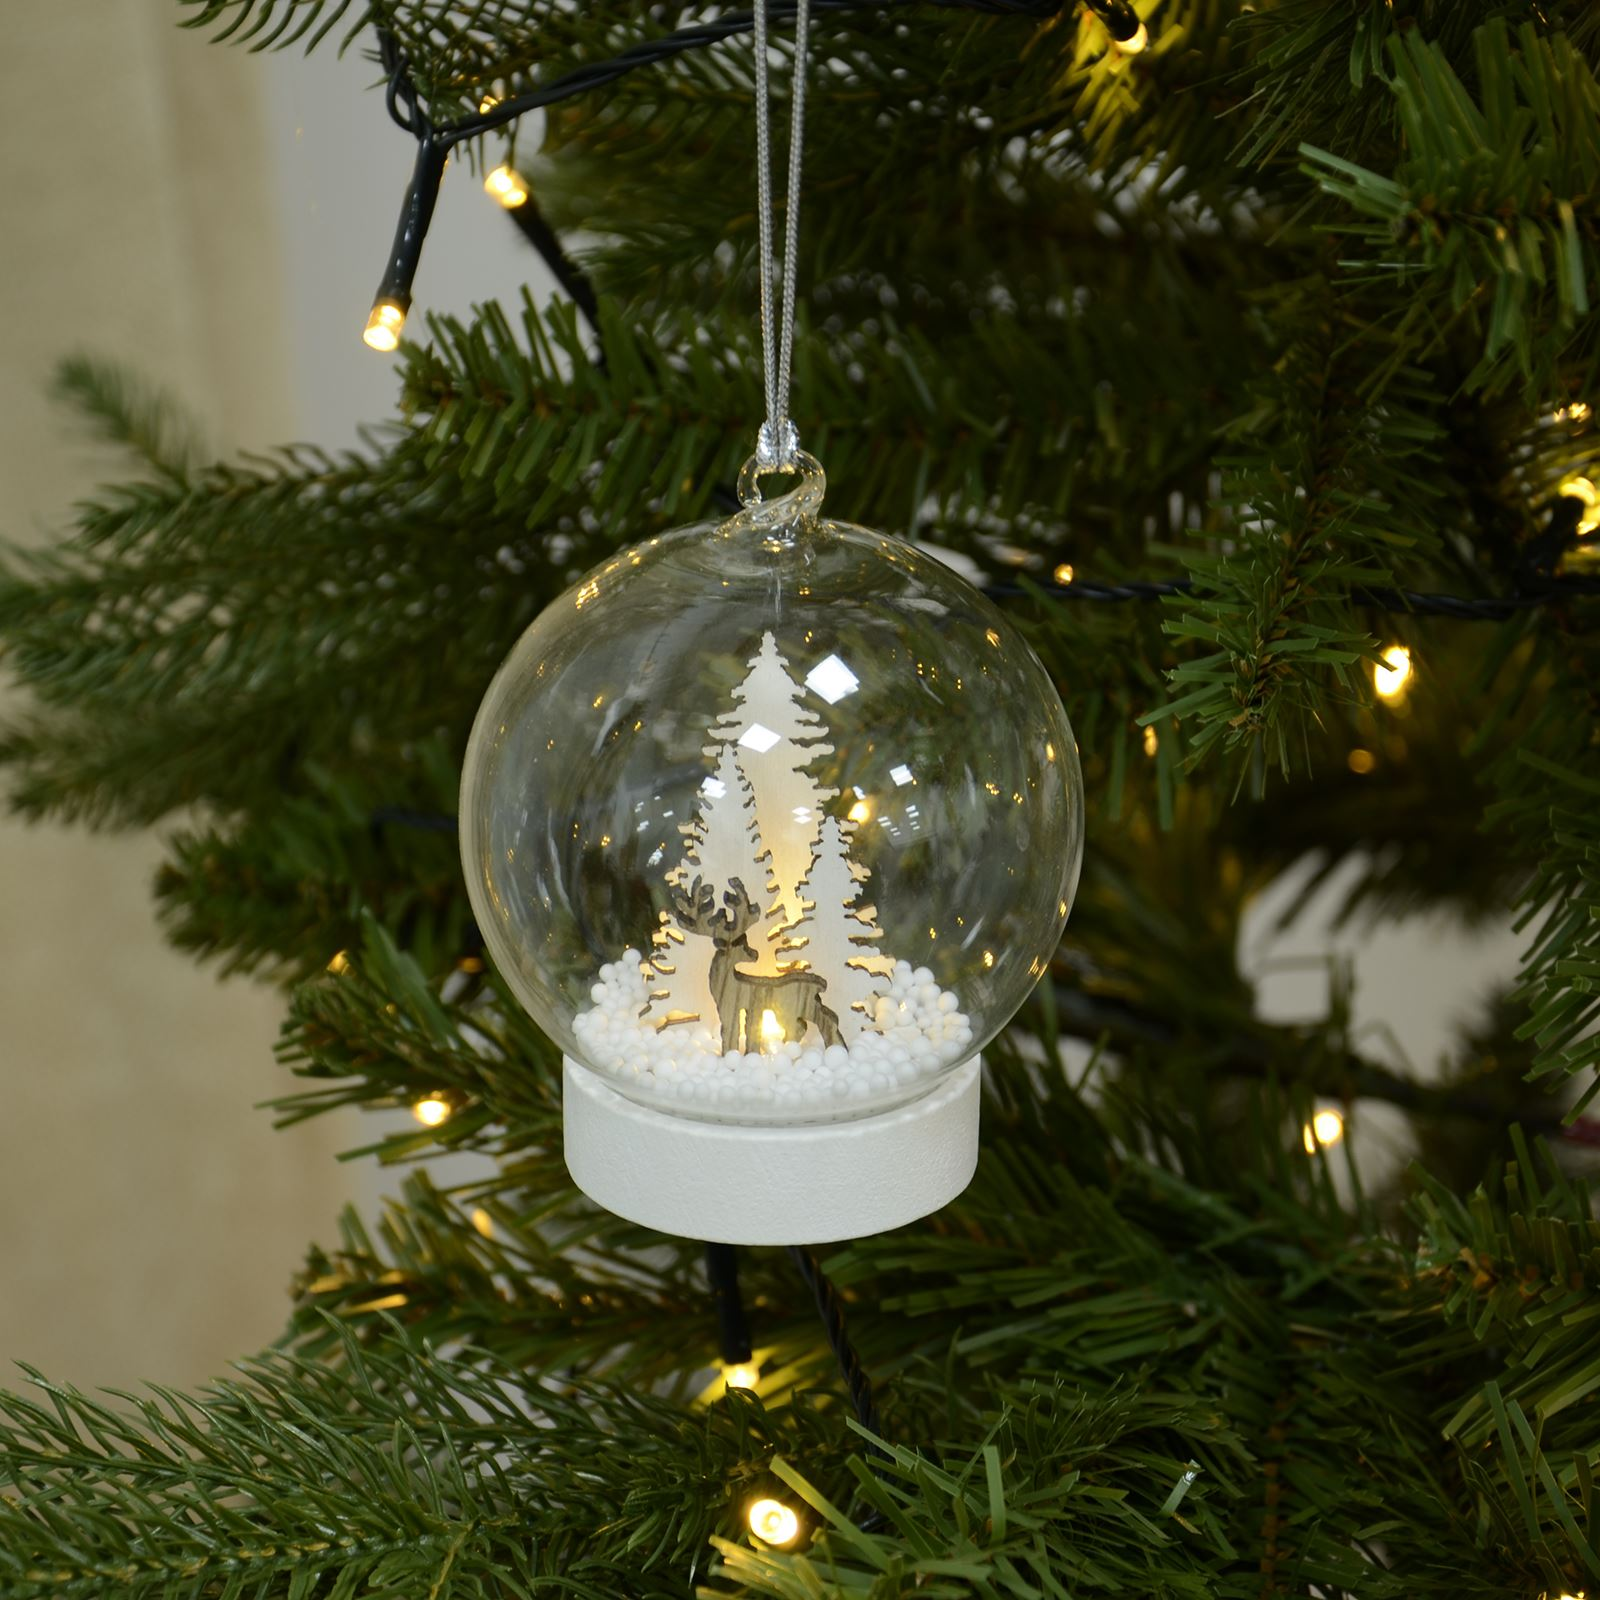 Christmas Tree With Baubles: Glass Christmas Tree Light Up Baubles Reindeer & Trees